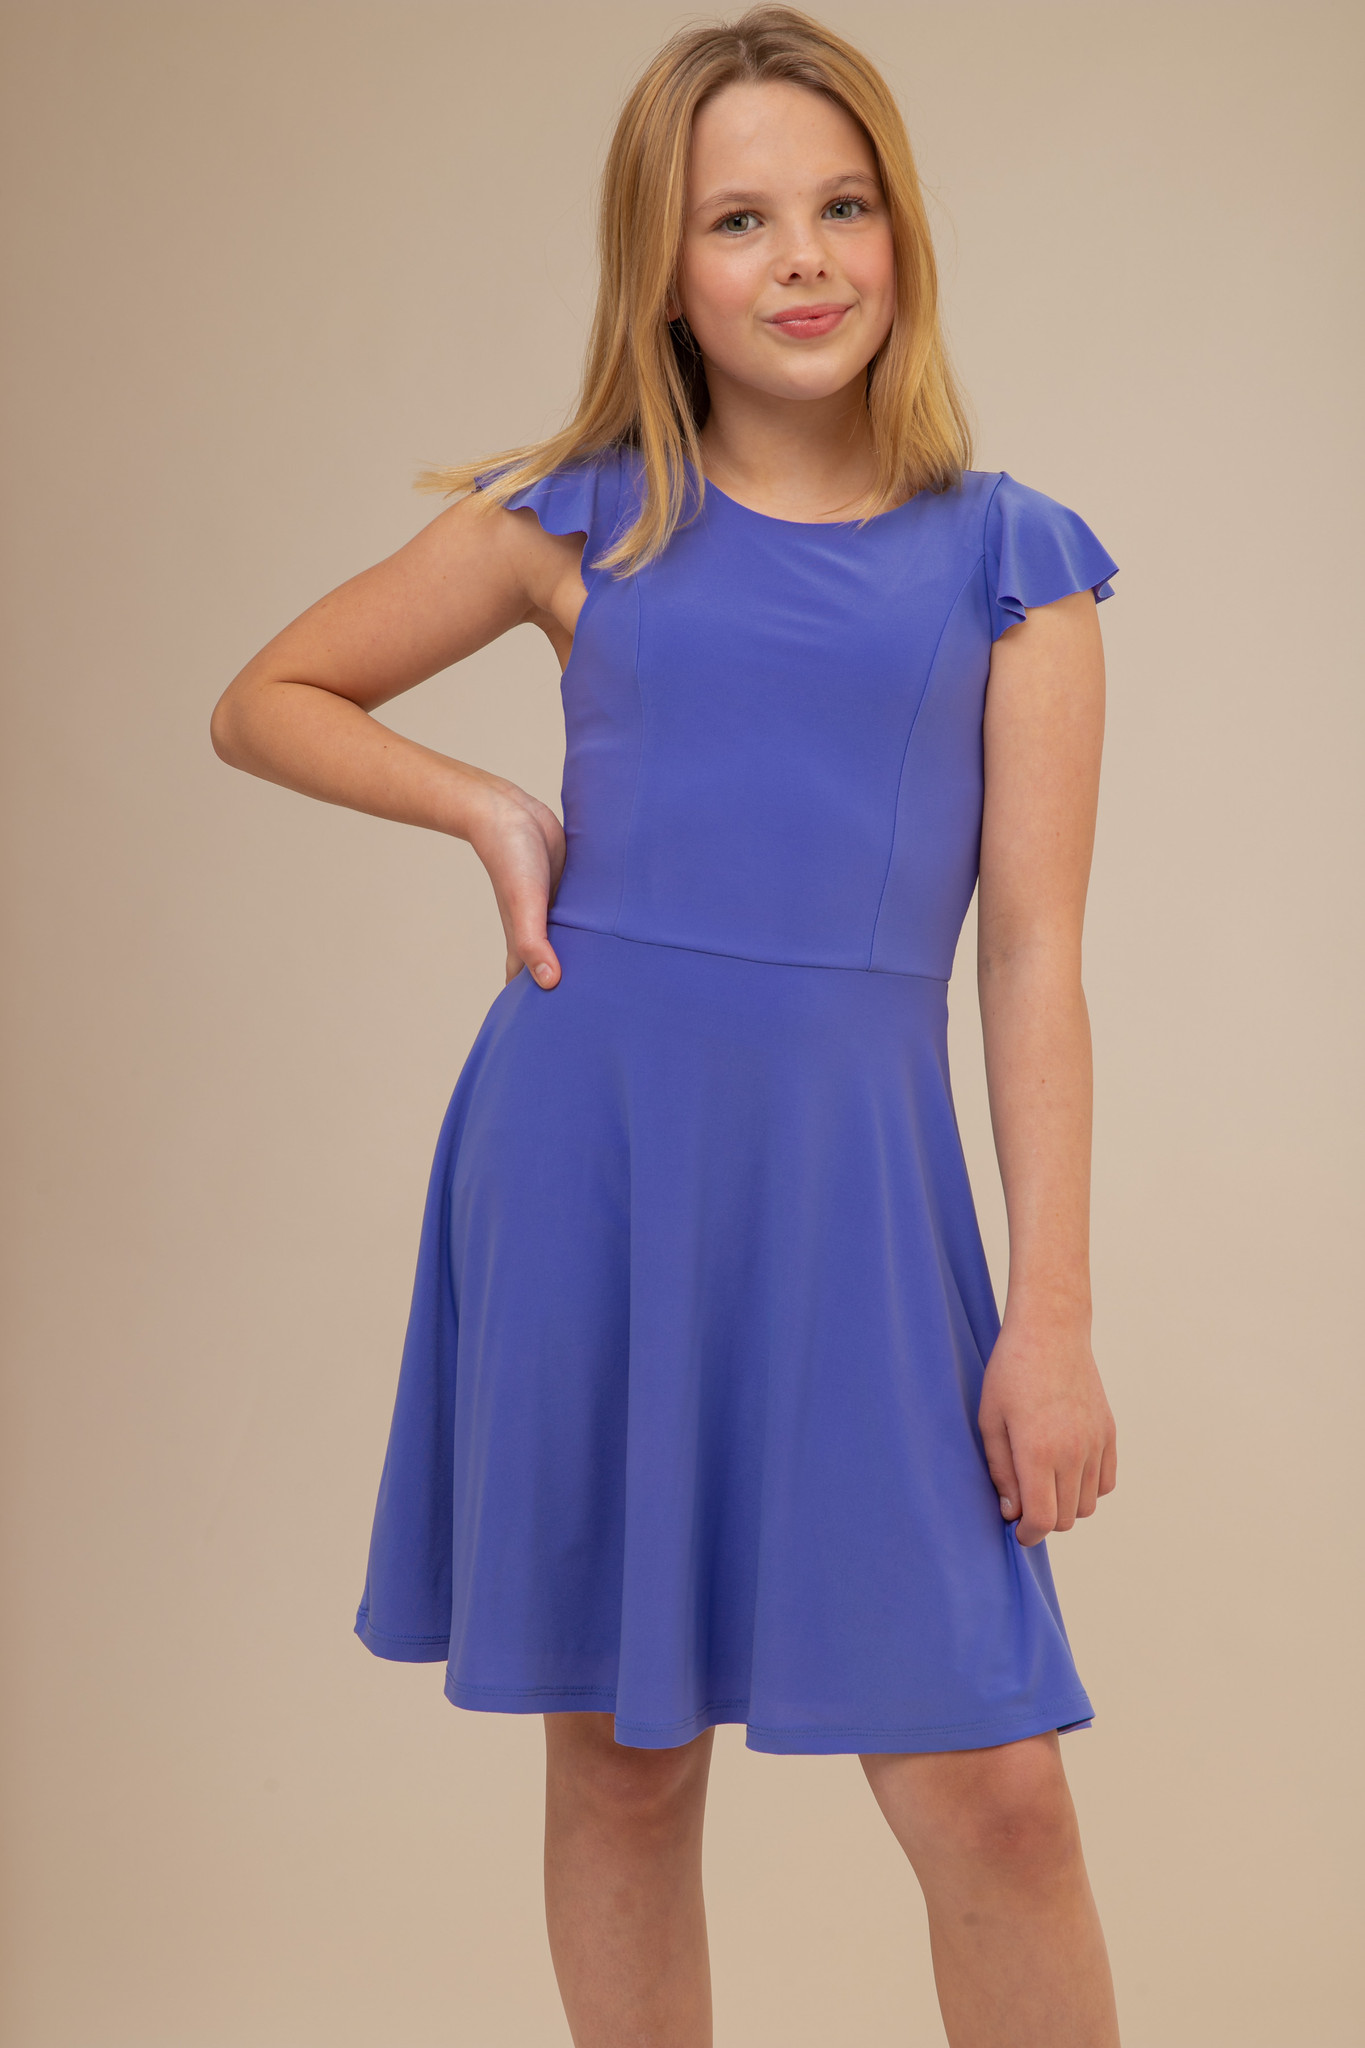 Periwinkle Flutter Sleeve Dress in Longer Length.